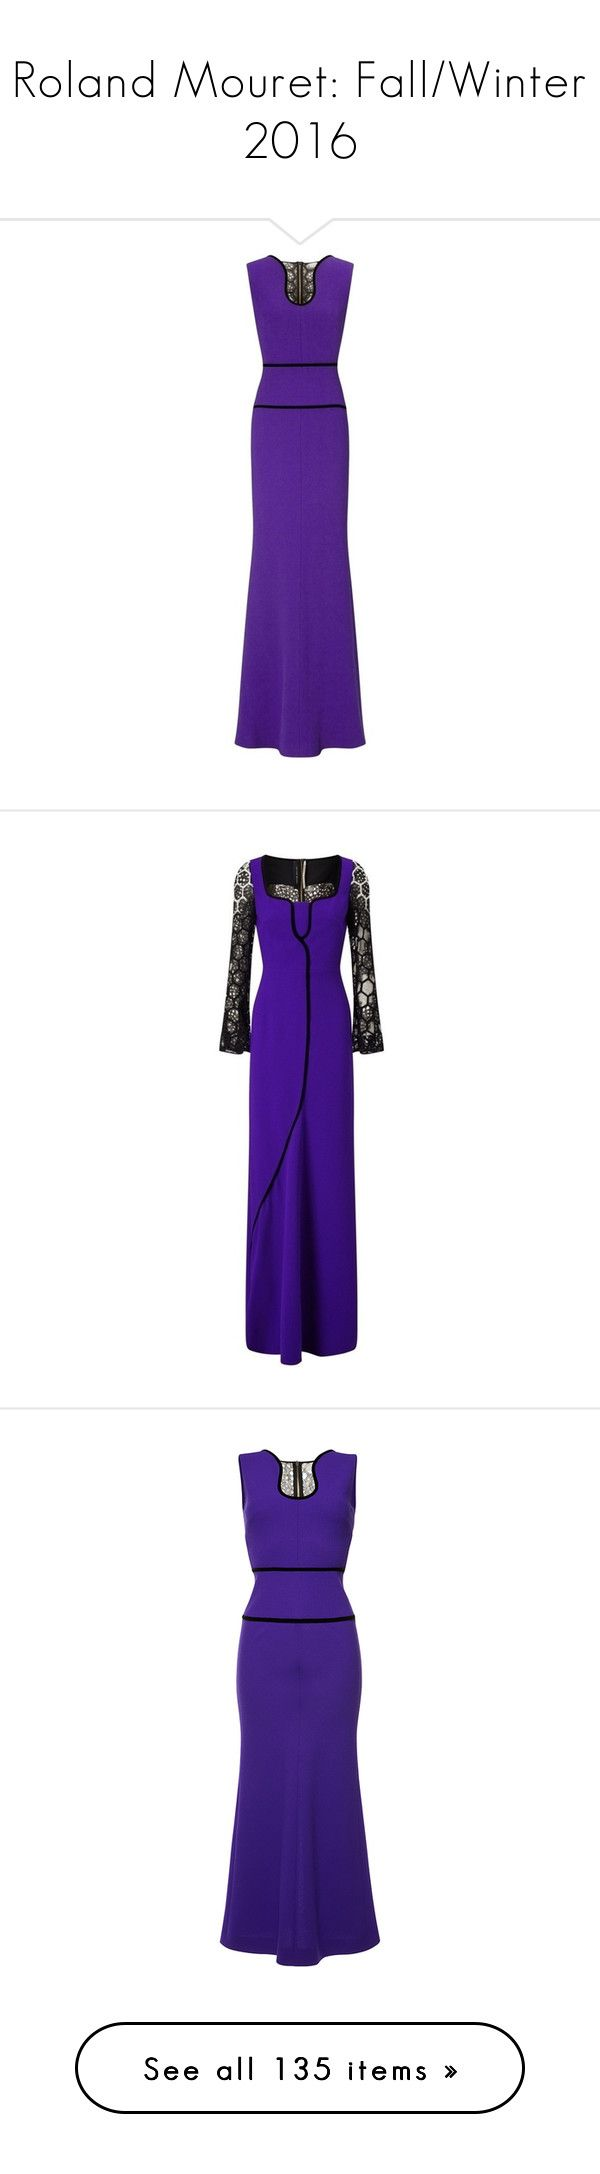 """""""Roland Mouret: Fall/Winter 2016"""" by livnd ❤ liked on Polyvore featuring RolandMouret, fallwinter2016, livndfashion, livndrolandmouret, dresses, gowns, trumpet gown, midi dress, blue ball gown and midi evening dresses"""